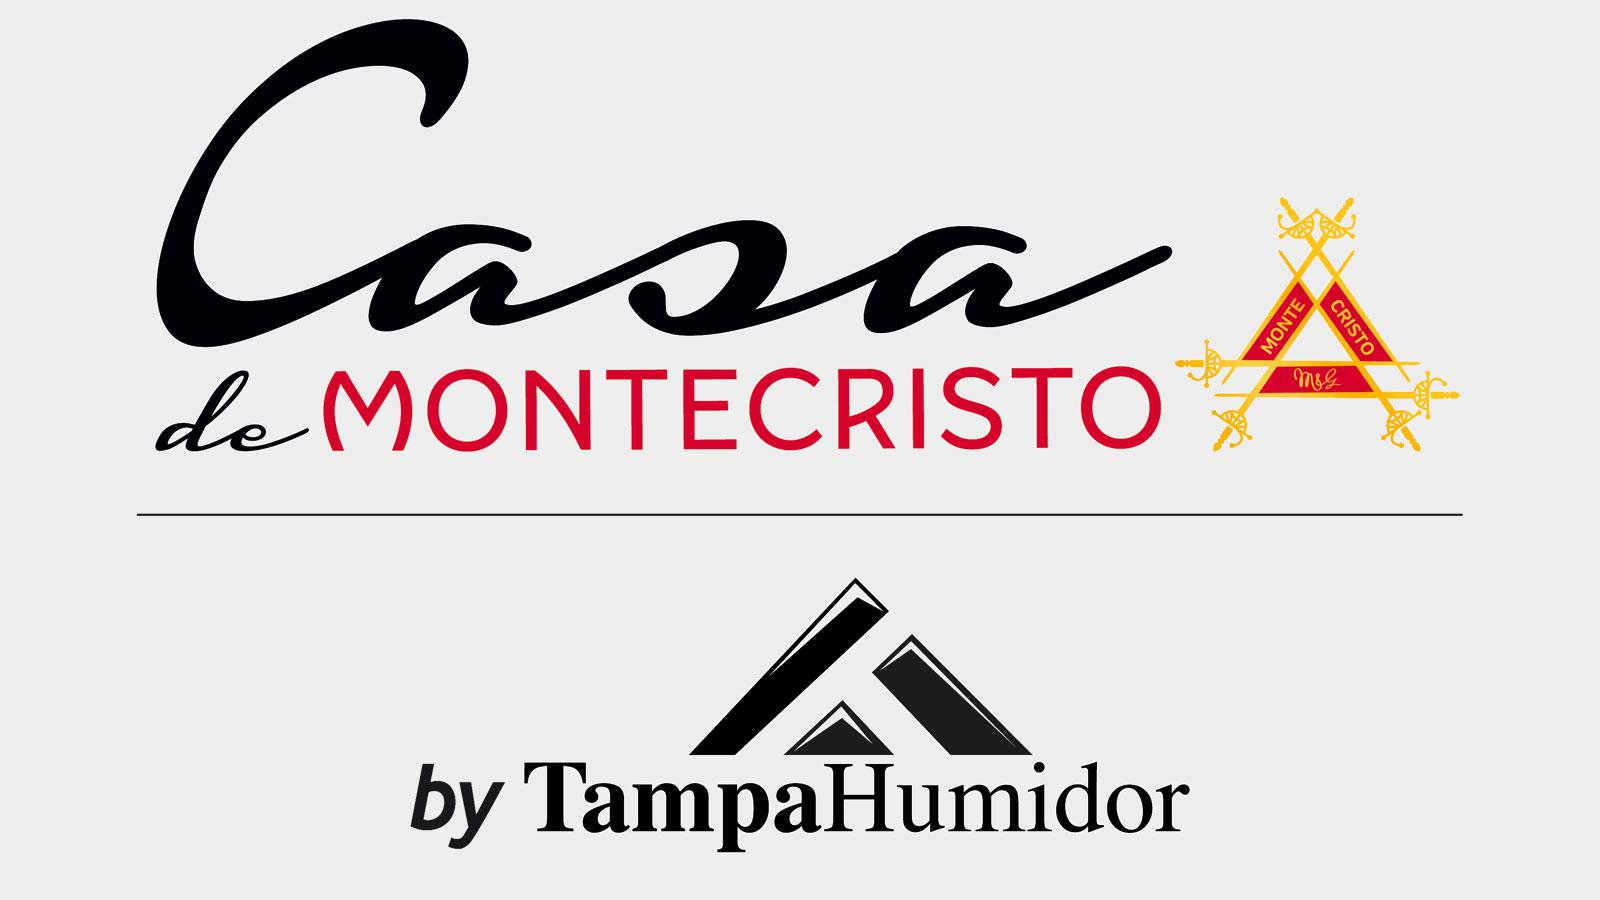 Casa de Montecristo Acquires Tampa Humidor, Expands Footprint